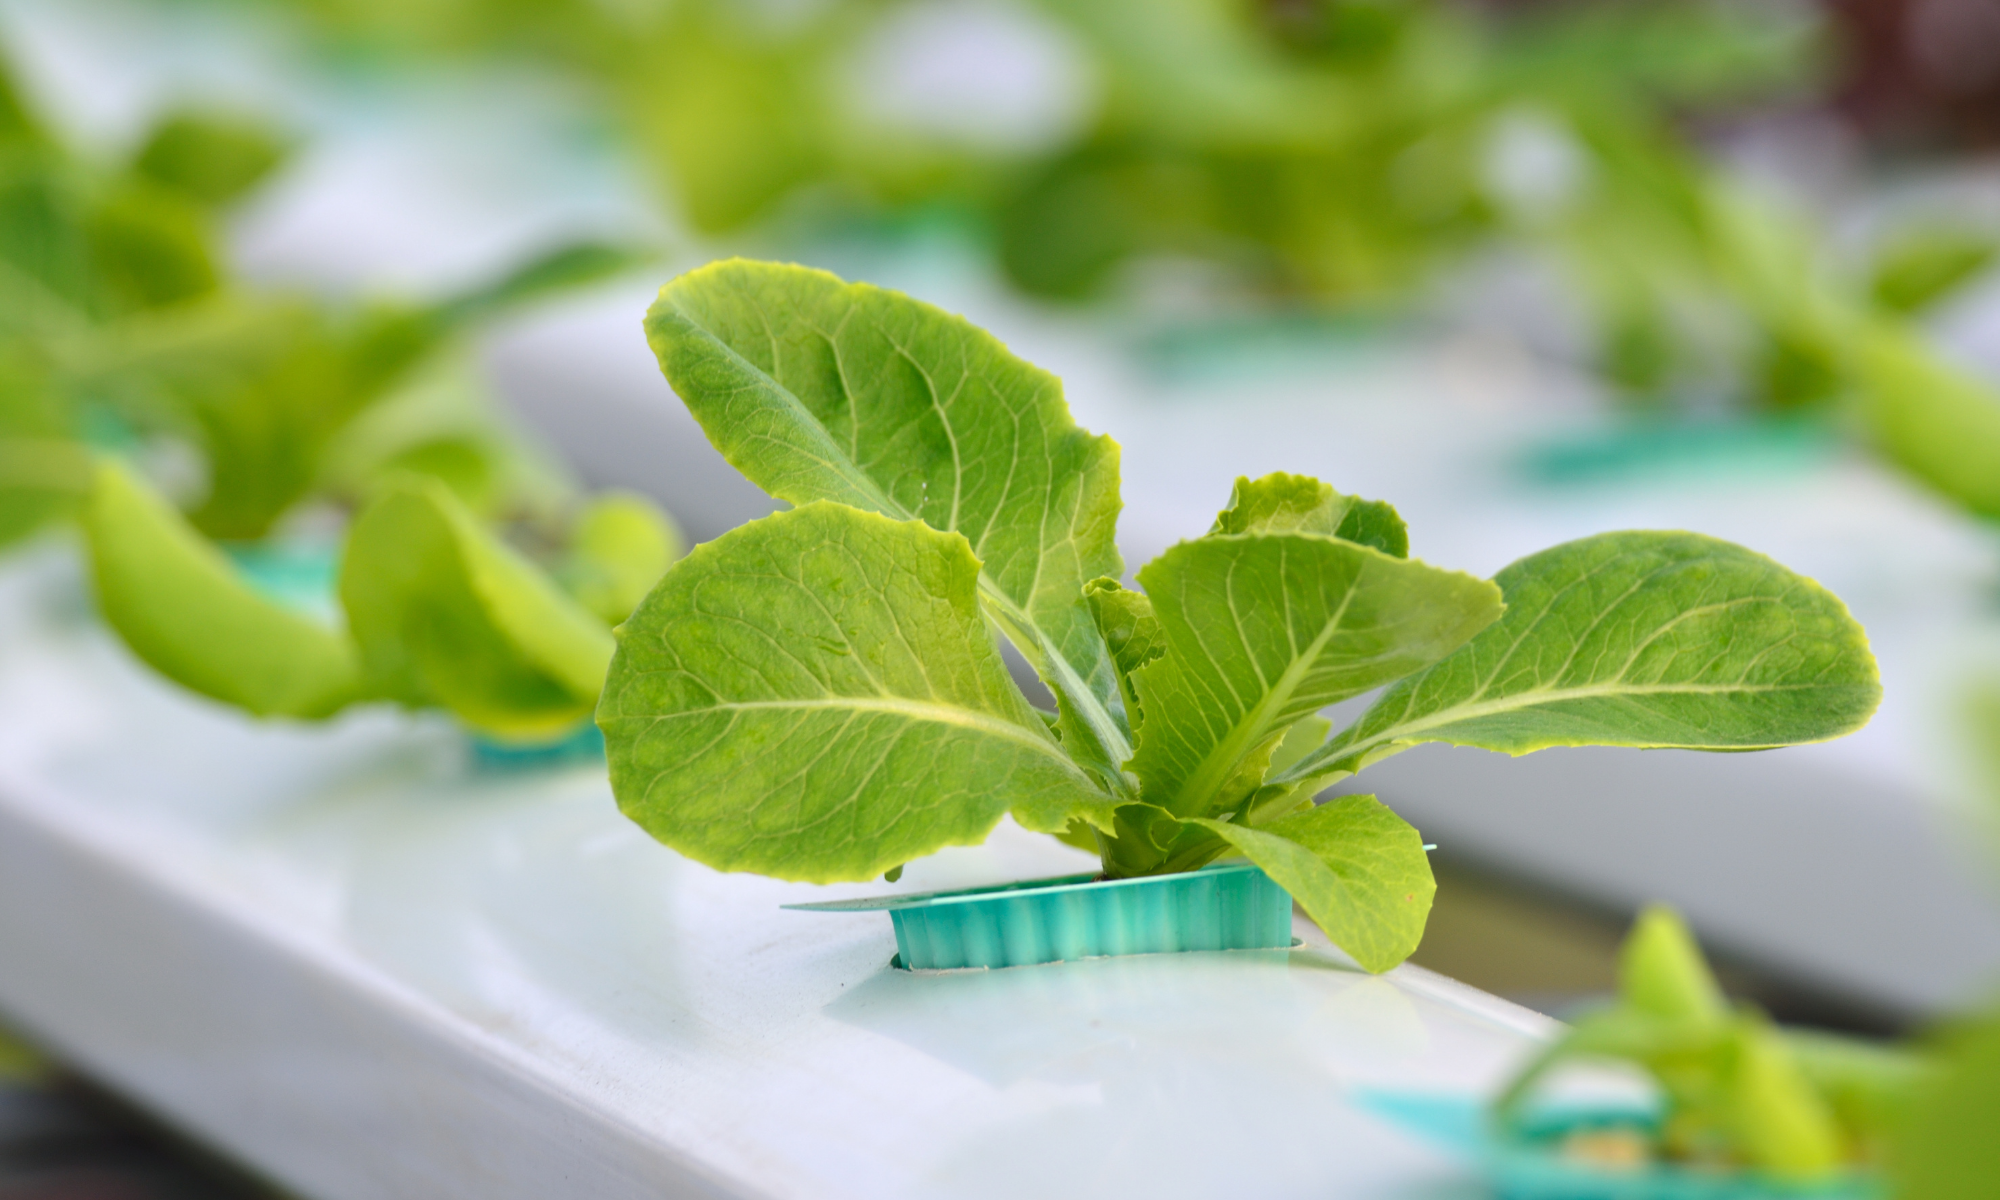 What Do You Feed Hydroponic Plants?